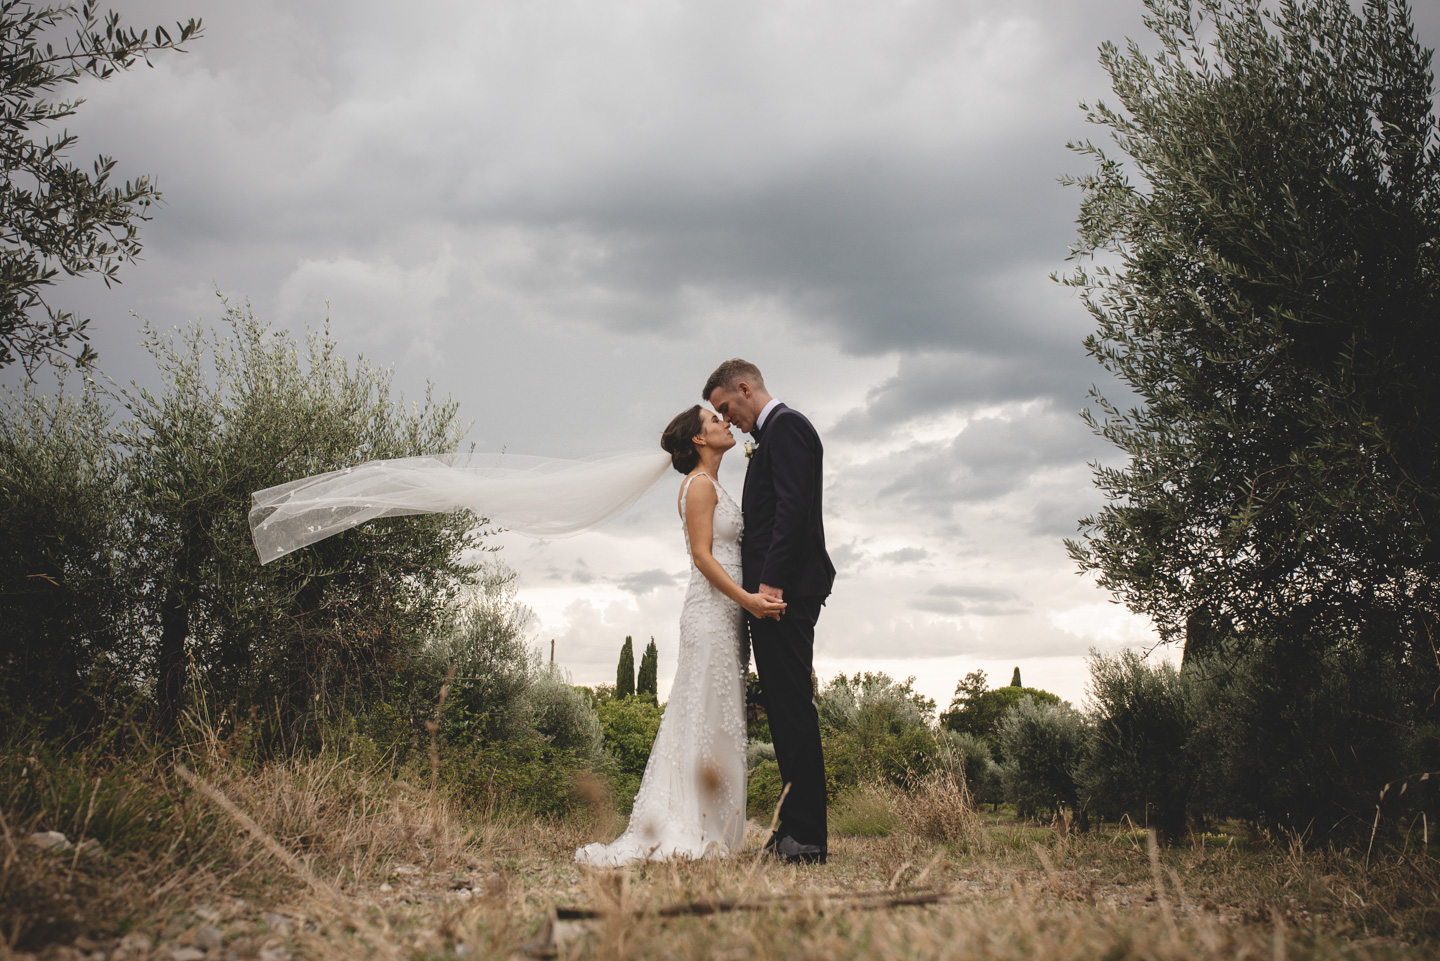 Wedding Shooting in Tuscaby Marco Vegni Photographer